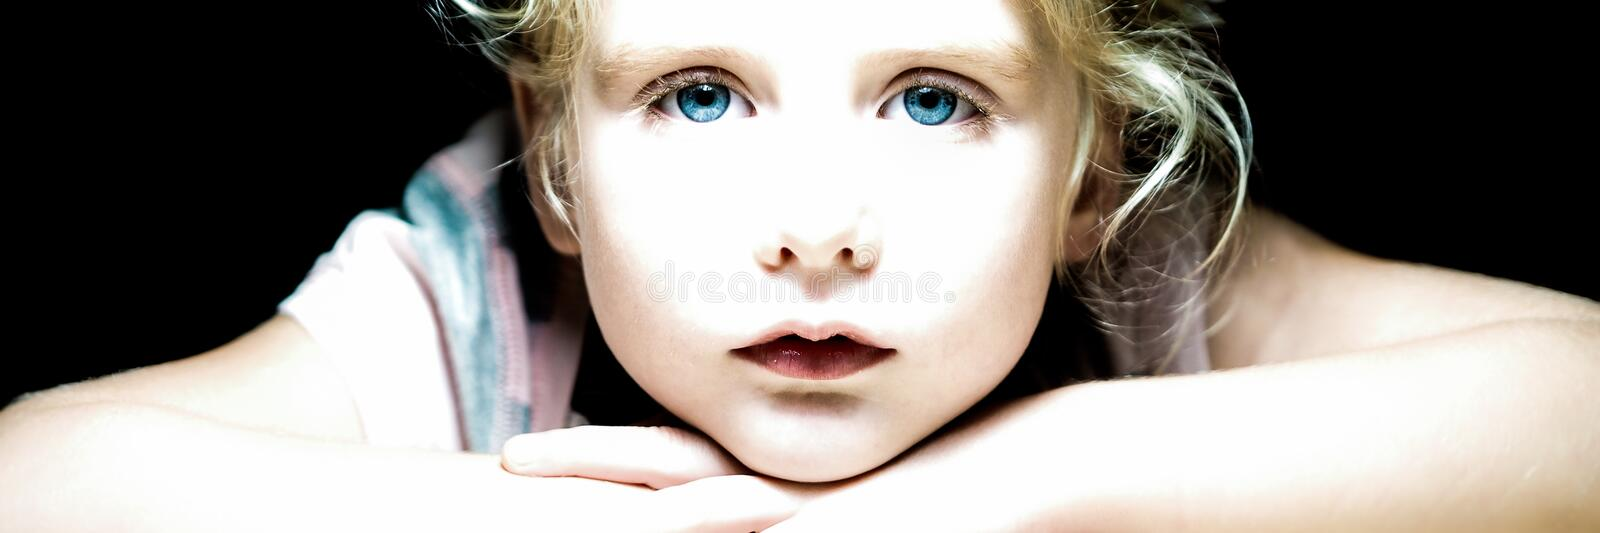 Blond blue eyed little girl looking at me stock images